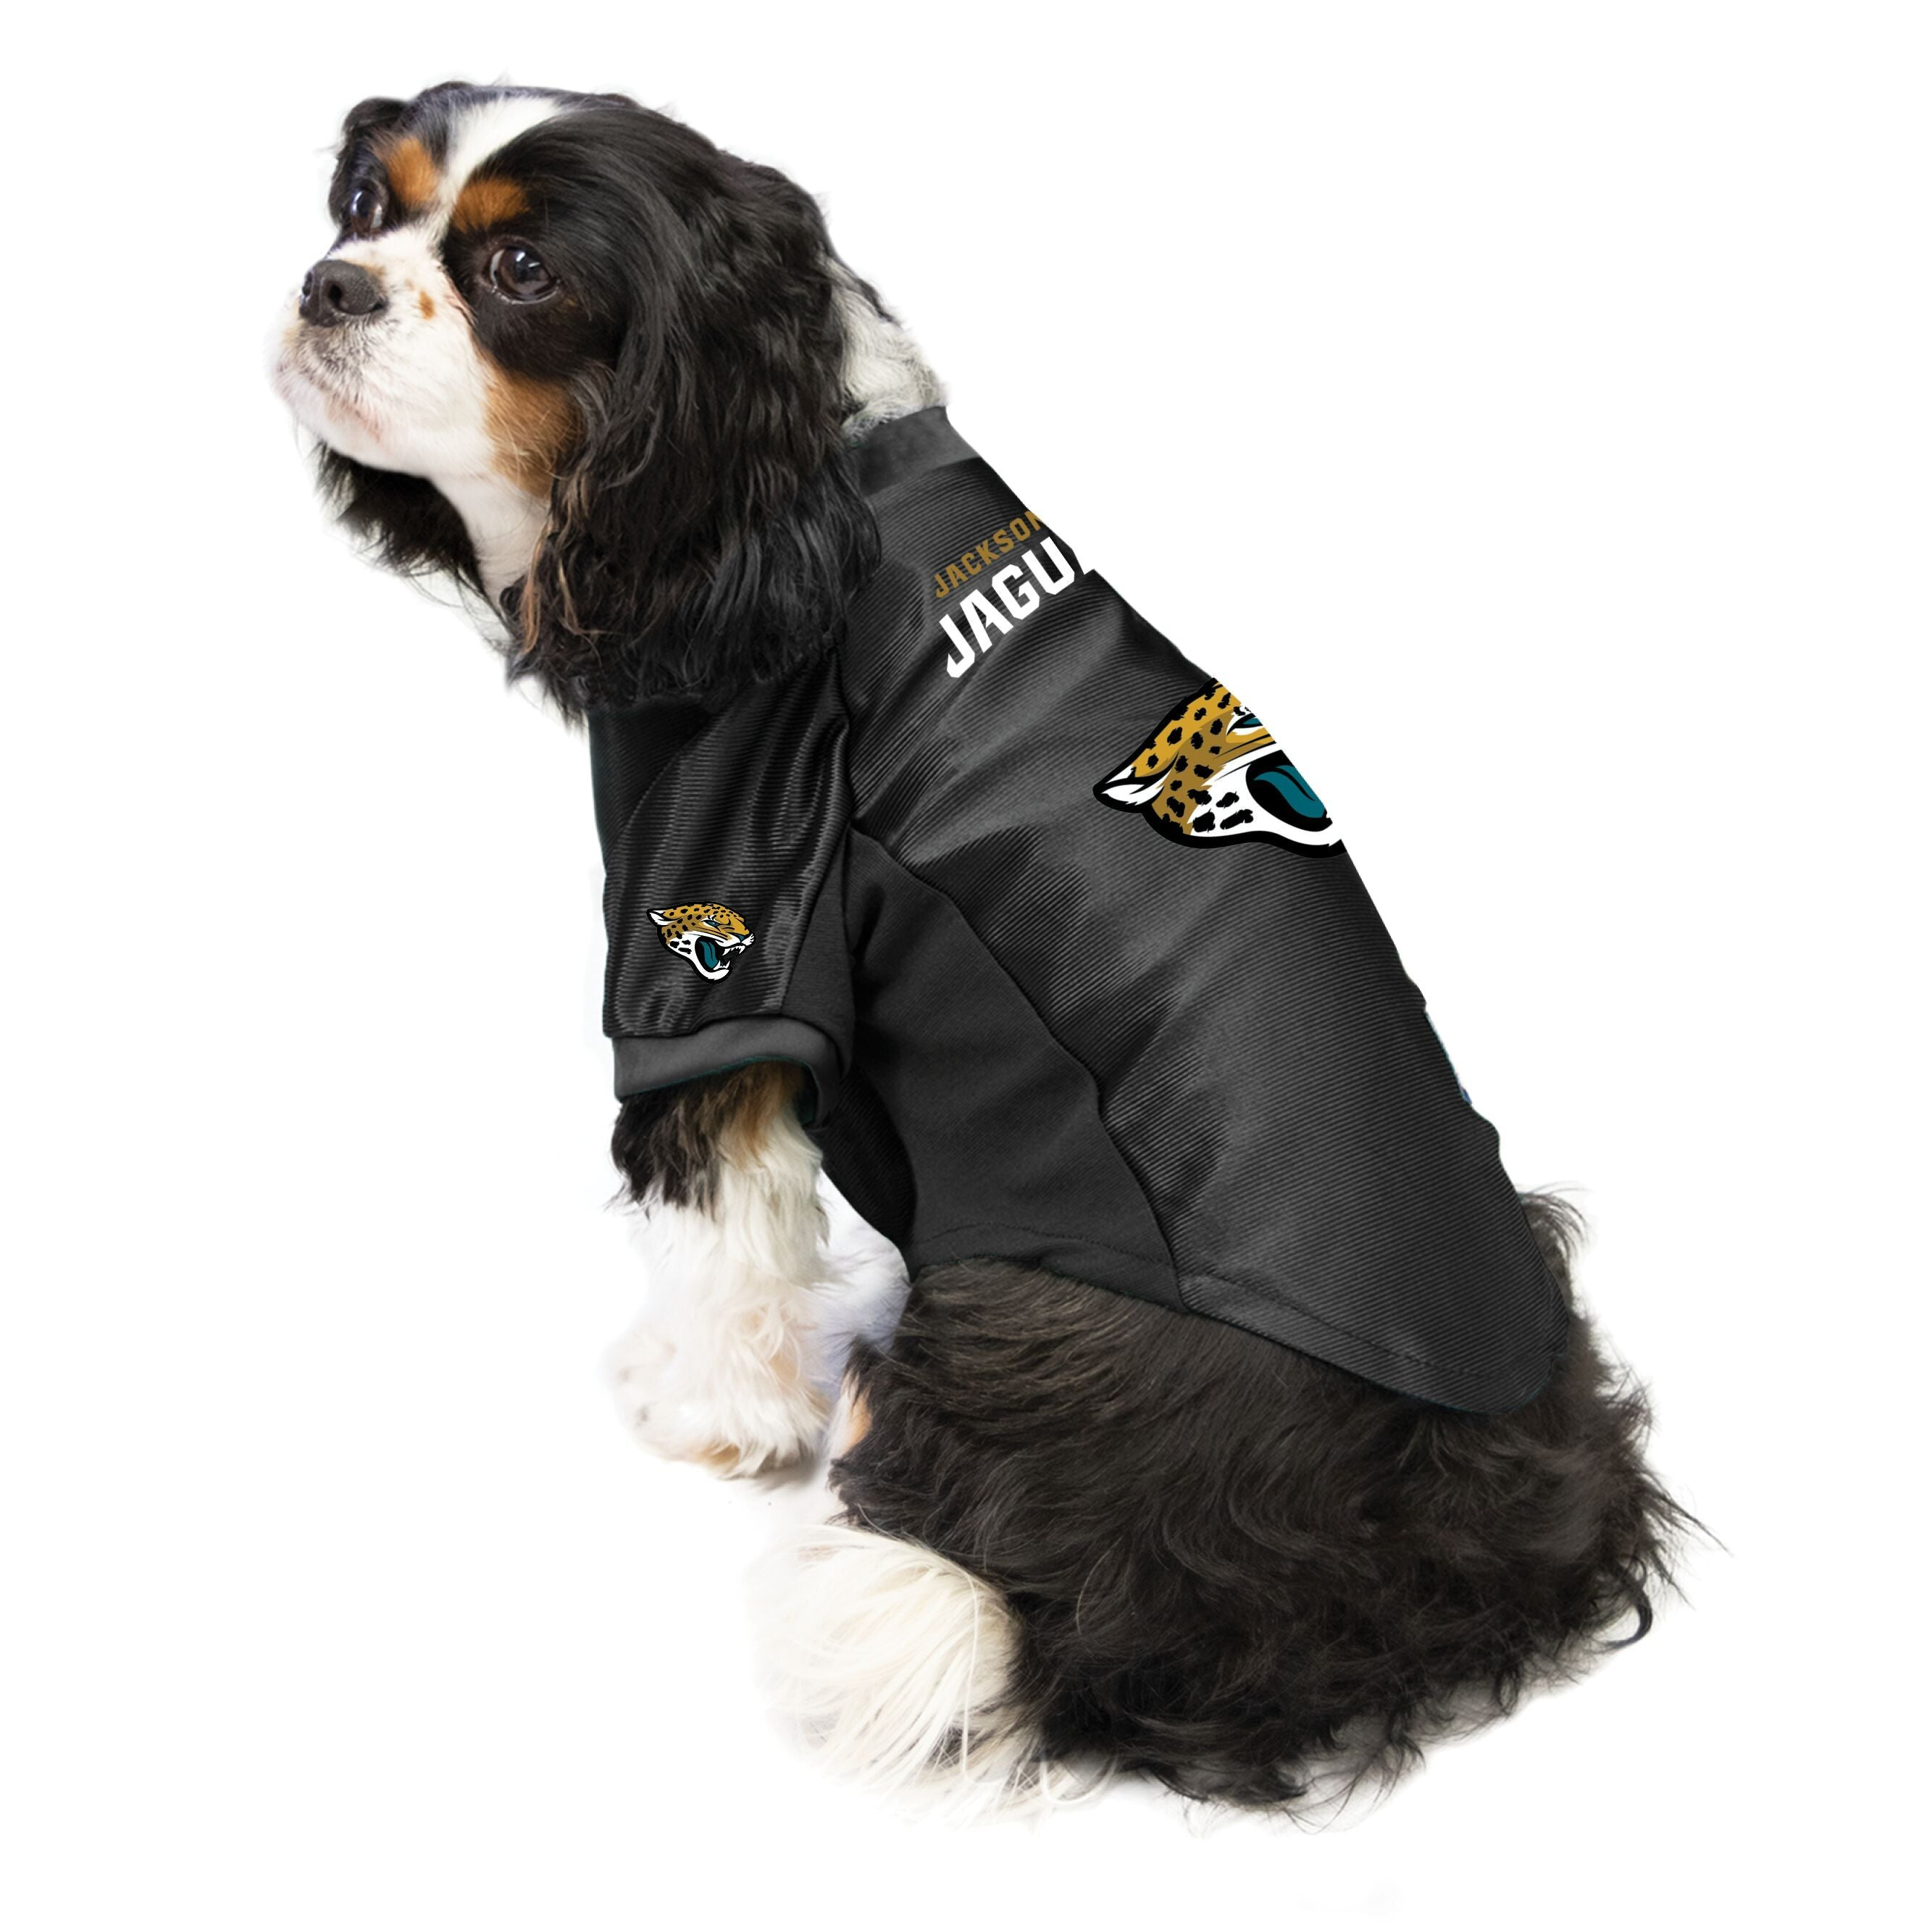 Jaguars outfit for dogs